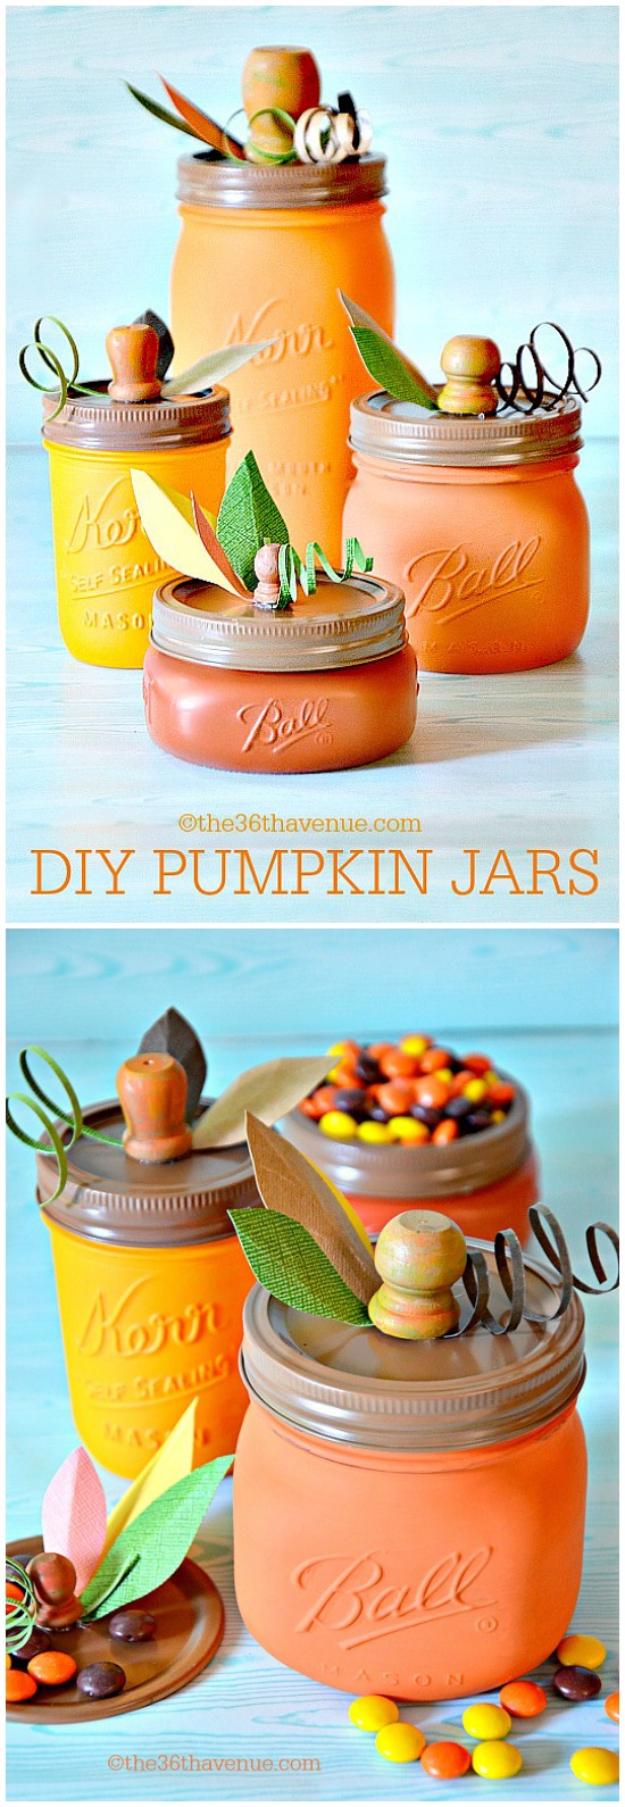 38 Best DIY Projects for Fall - DIY Pumpkin Mason Jars - Quick And Easy Projects For Fall, Fun DIY Projects To Try This Fall, Cute Fall Craft Ideas, Fall Decors, Easy DIY Crafts For Fall http://diyjoy.com/diy-projects-for-fall